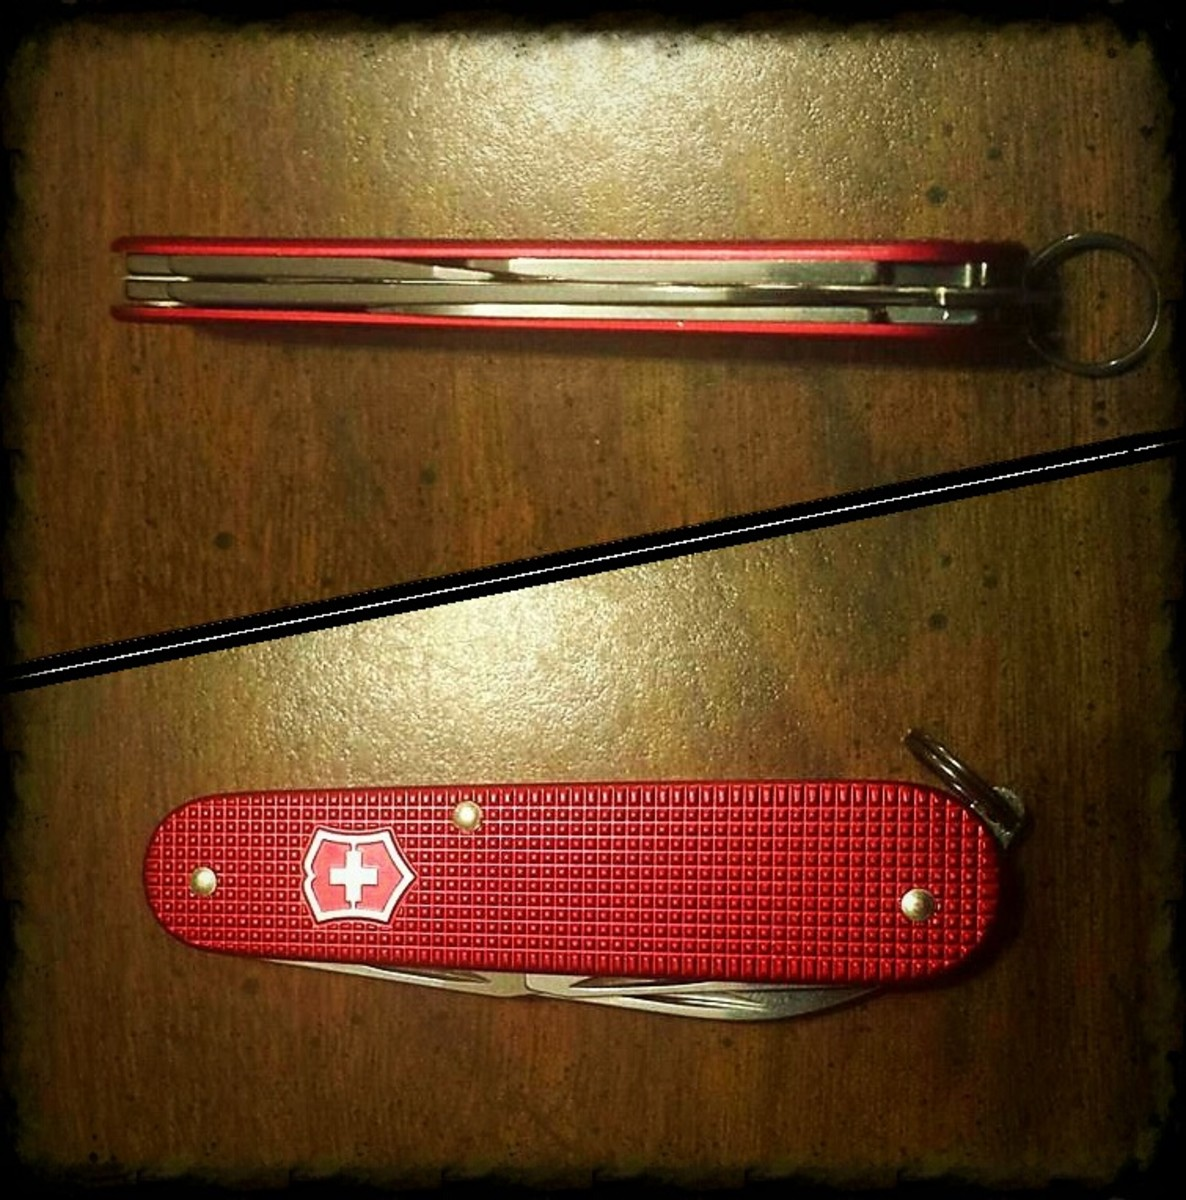 victorinox-cadet-the-swiss-army-knife-for-minimalists